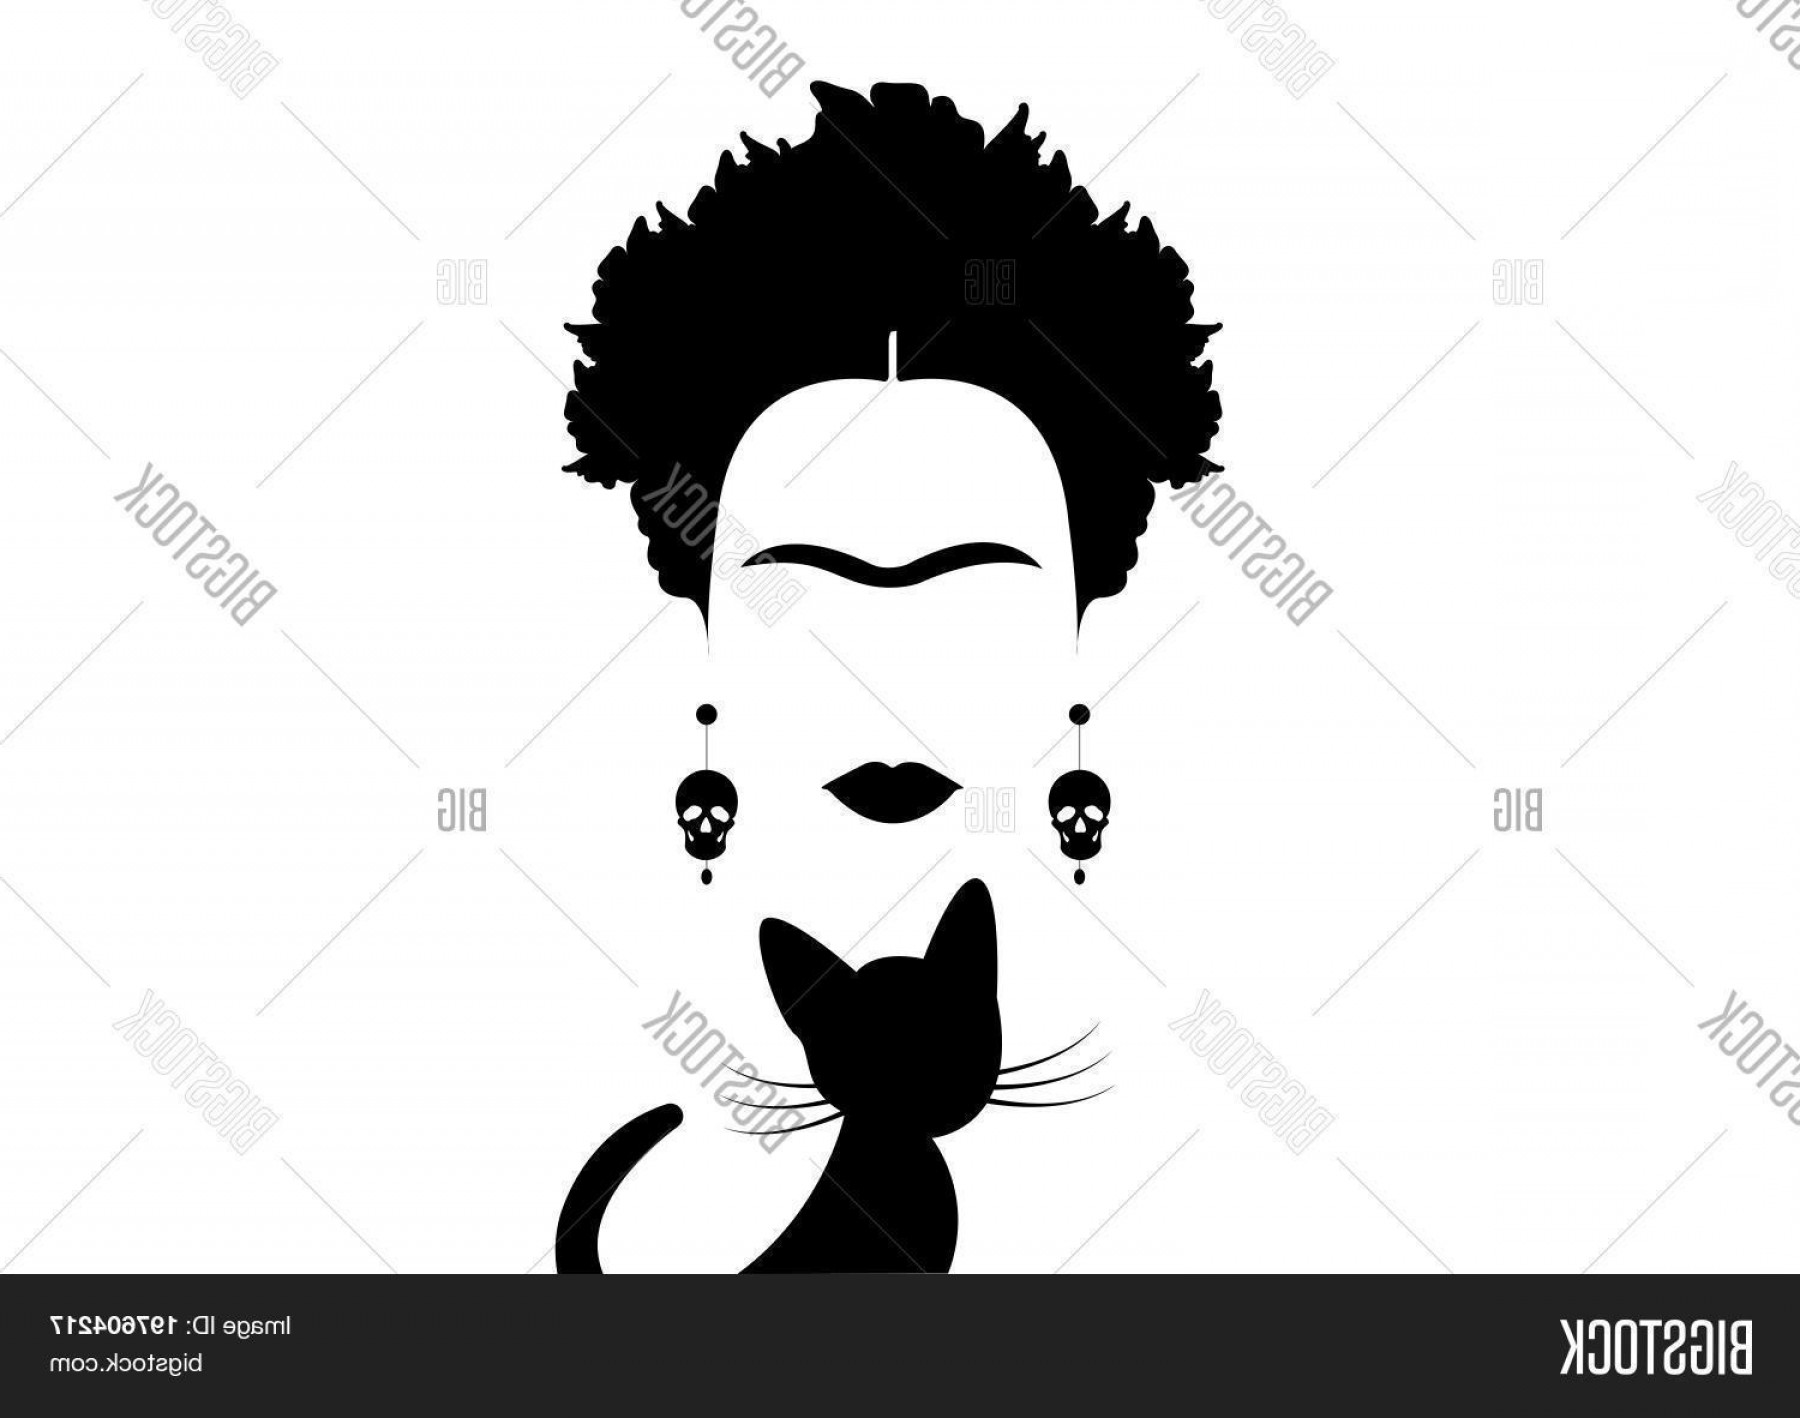 Frida Black And White Vector: Stock Vector Frida Kahlo And Black Cat C Portrait Of Mexican Woman Minimalist Silhouette With Skulls C Vector Isolated